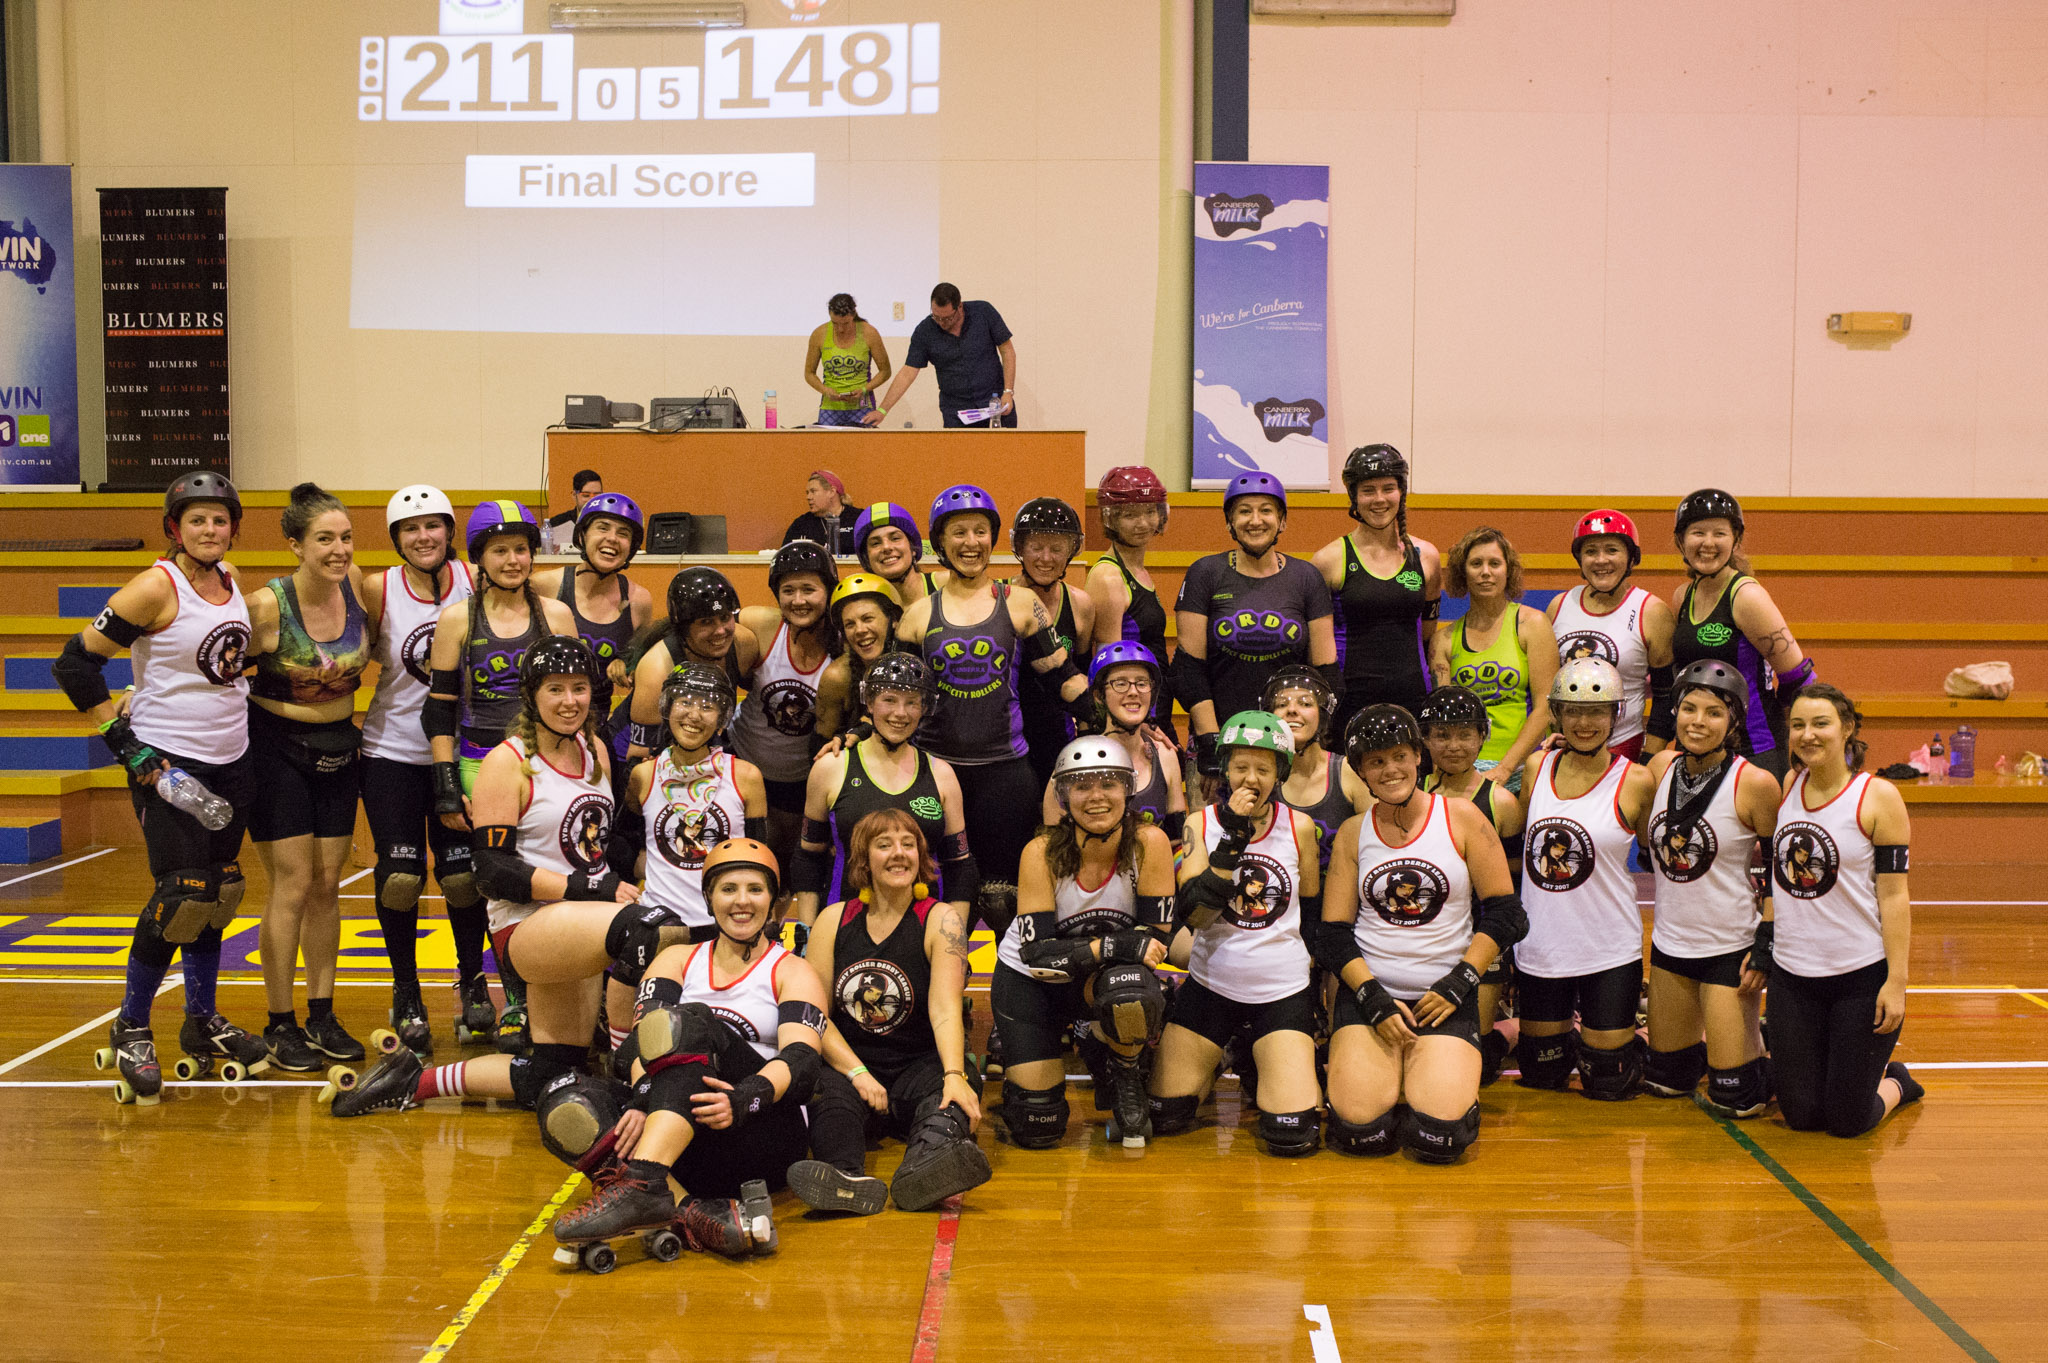 CRDL Invitational. Photographer: Brett Sargeant, D-eye Photography